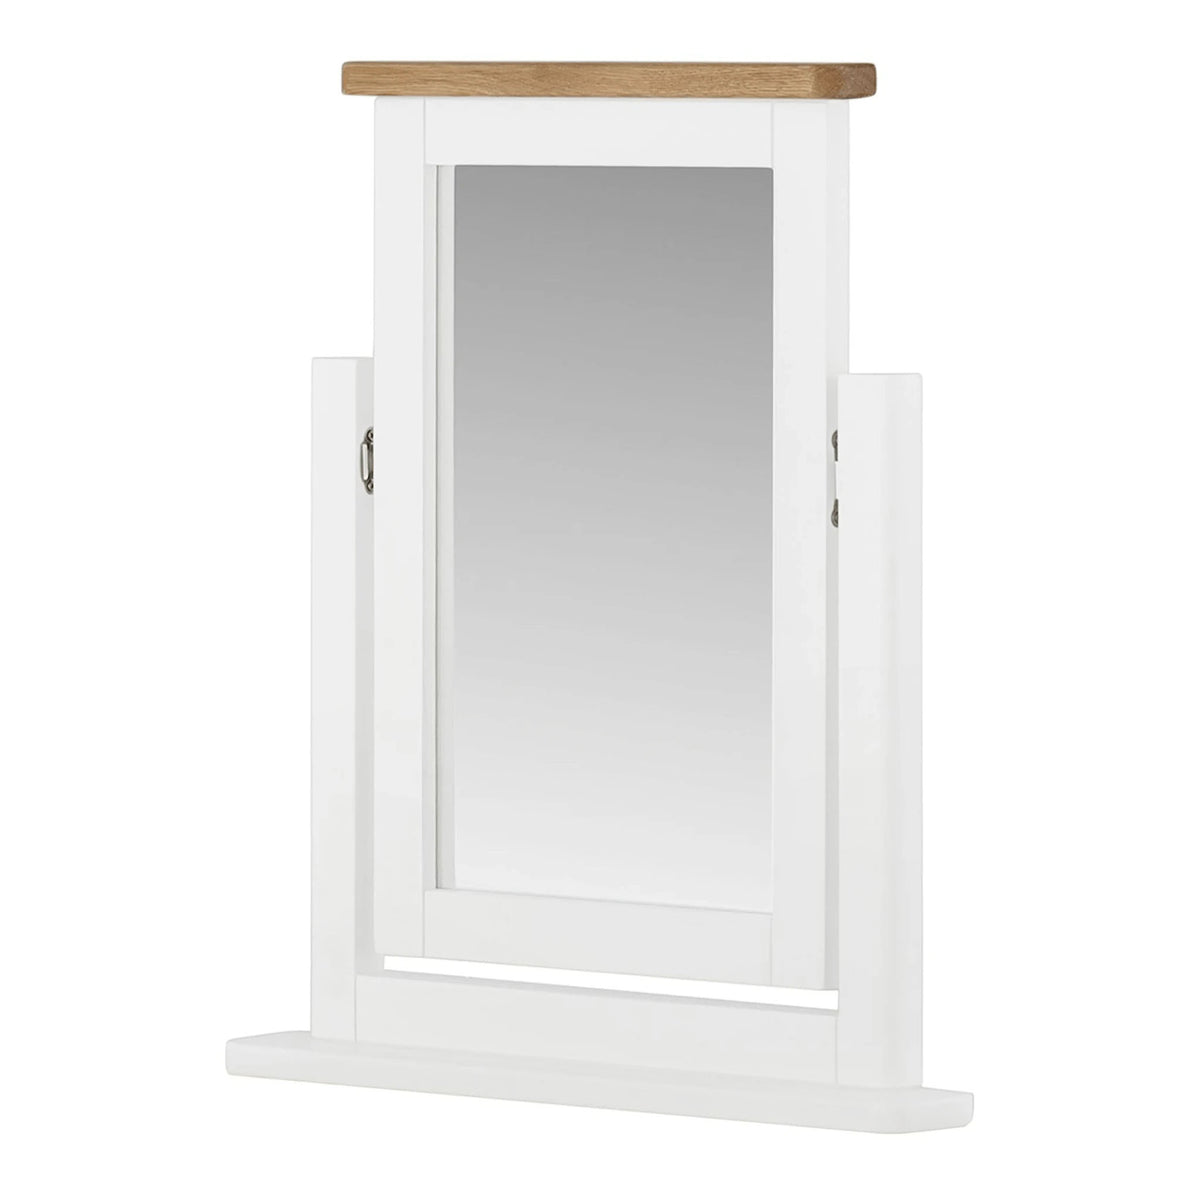 The Padstow White Wooden Swivel Vanity Mirror from Roseland Furniture